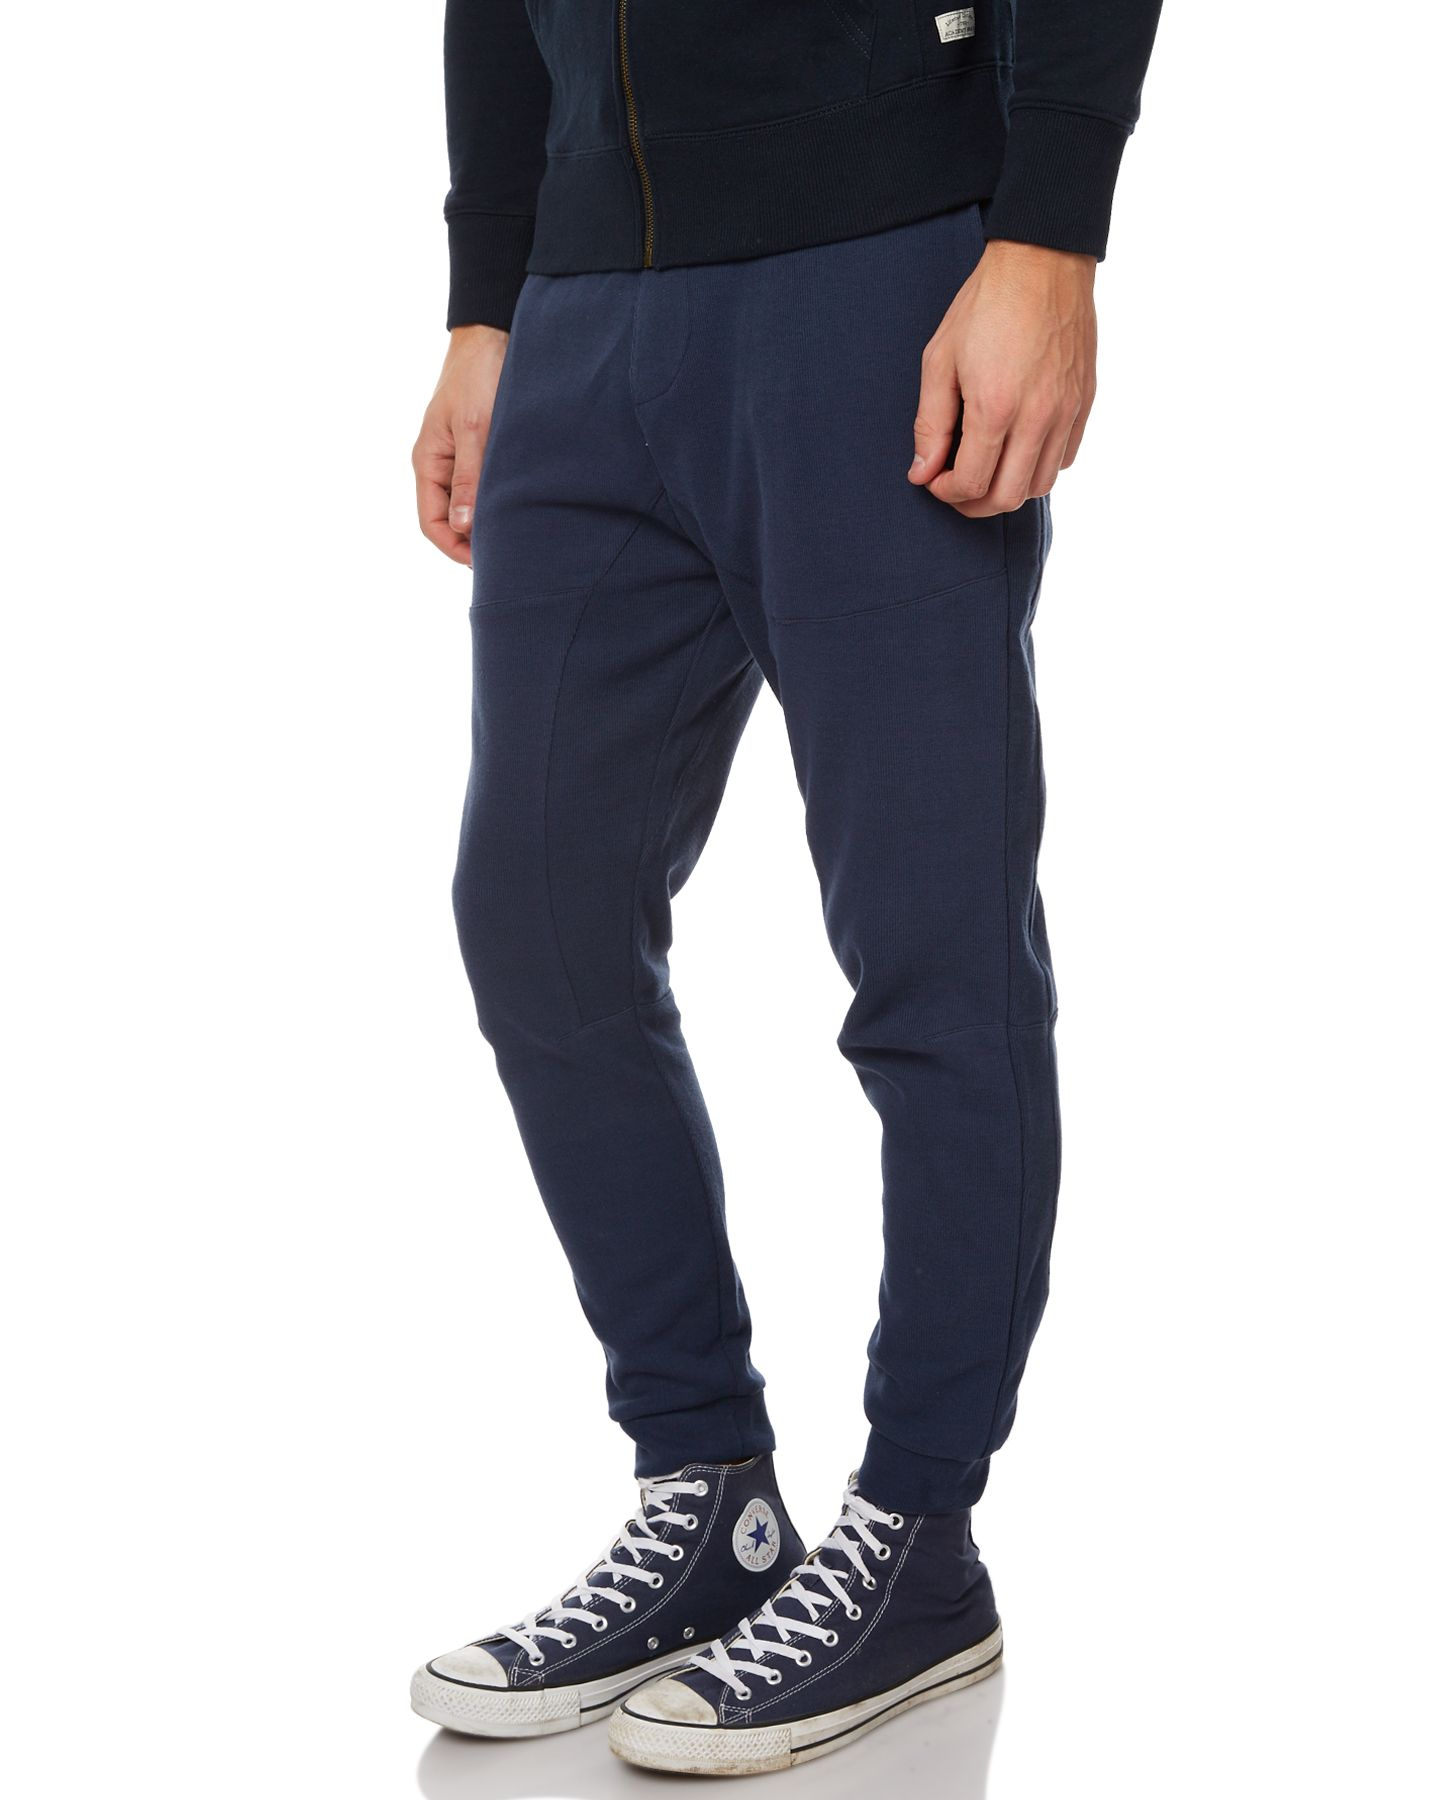 You only live once so get this   Academy Brand Rib Mens Trackpant Blue http://www.fashion4men.com.au/shop/surfstitch/academy-brand-rib-mens-trackpant-blue/ #Academy, #AcademyBrand, #Blue, #Brand, #Jeans, #MenS, #Rib, #SurfStitch, #Trackpant